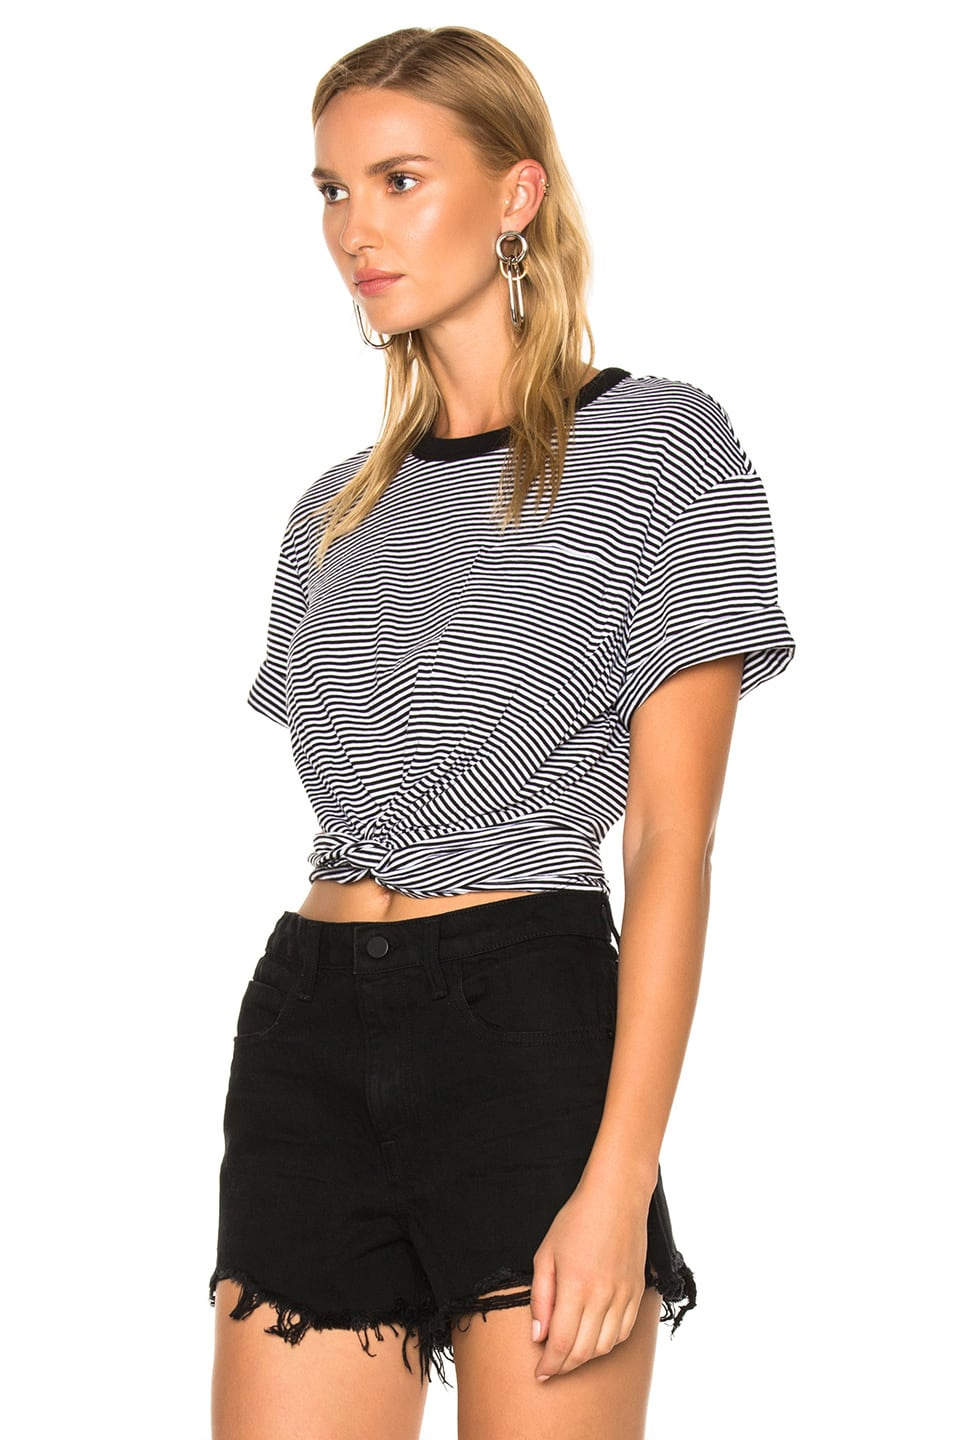 Image 2 of T by Alexander Wang Cotton Jersey Twist Front Short Sleeve Tee in Black & White